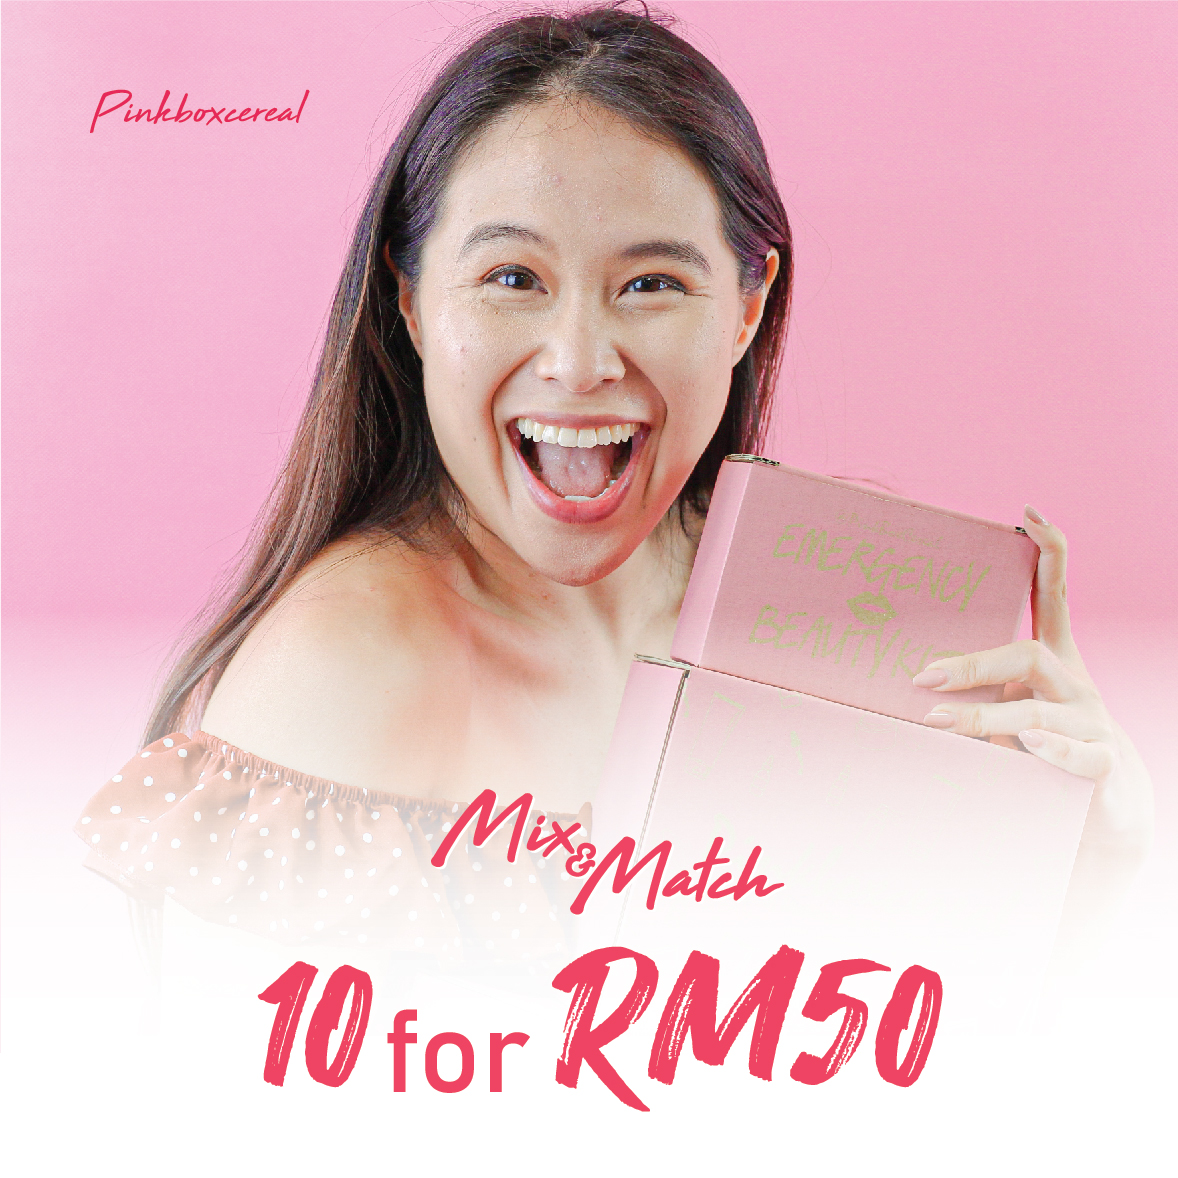 Click here for our 10 for RM50 offer!